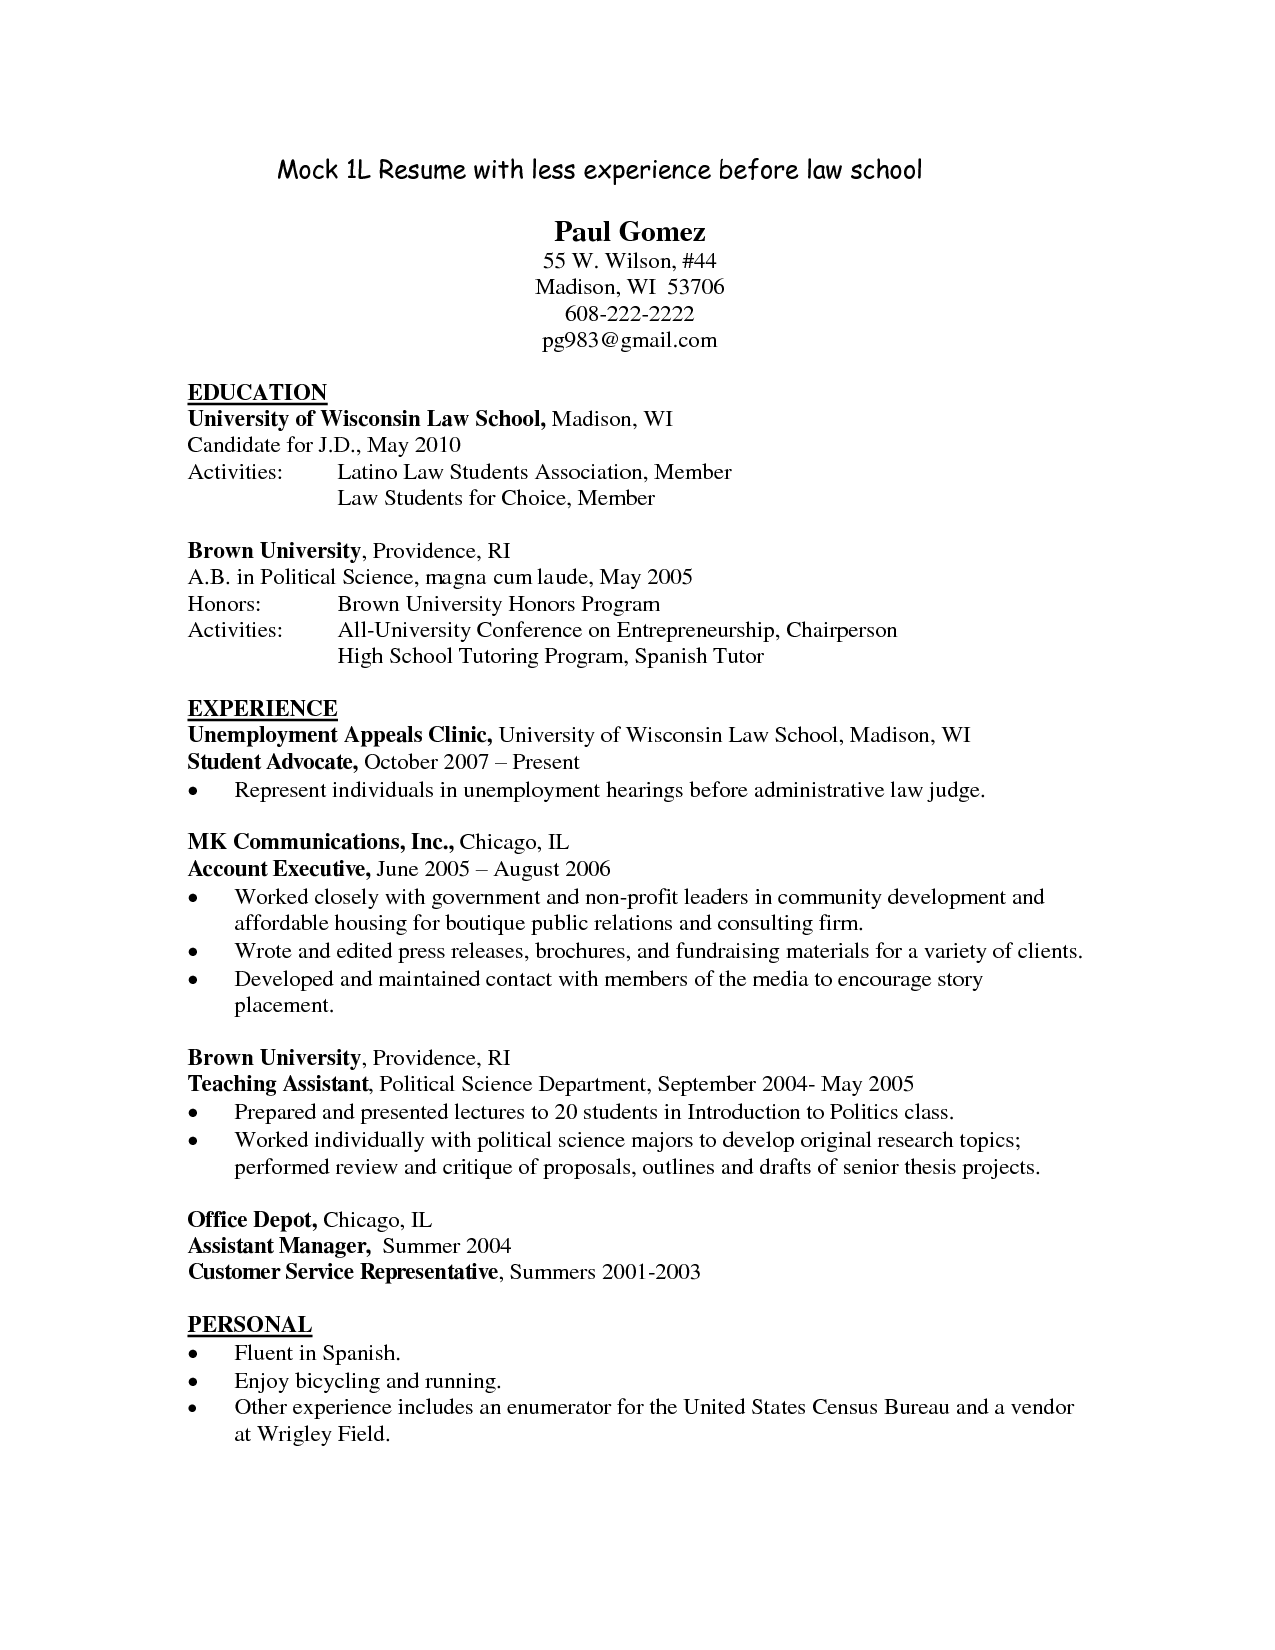 legal resume template templates and builder writing law school cover letter internship sample